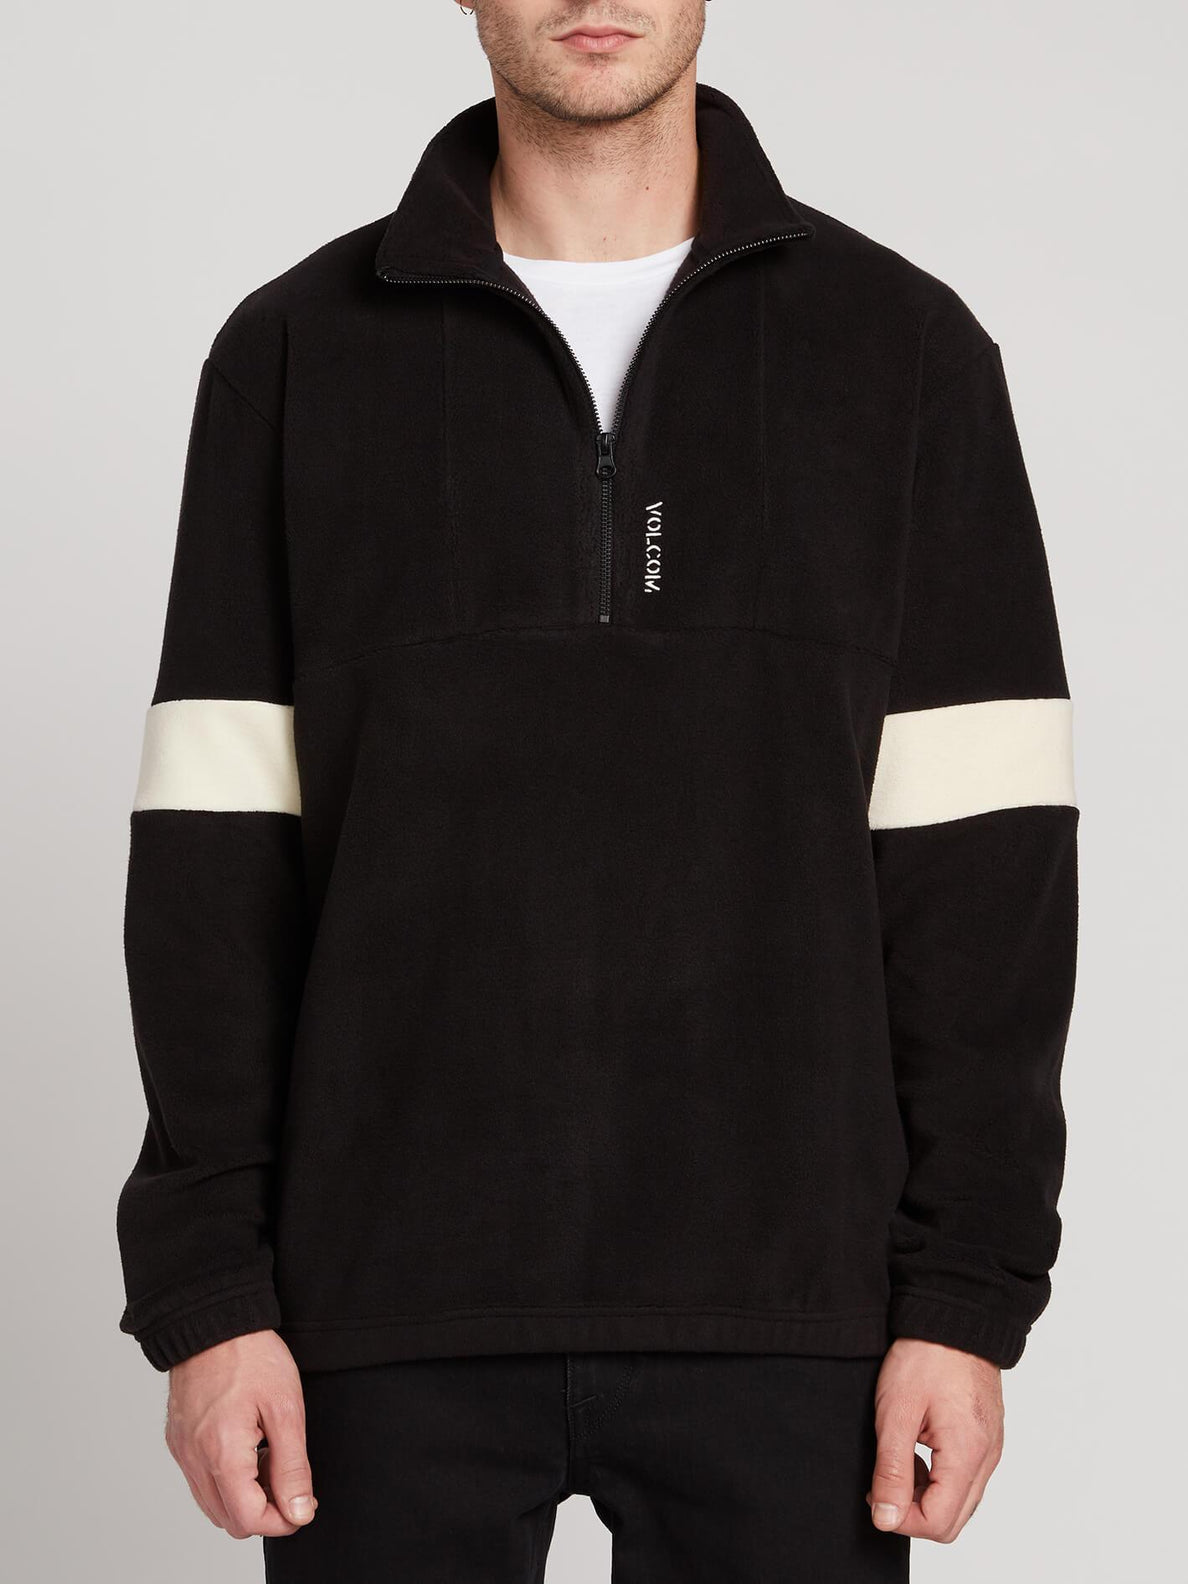 Trekker Sherpa Sweater - Black (A4631906_BLK) [1]